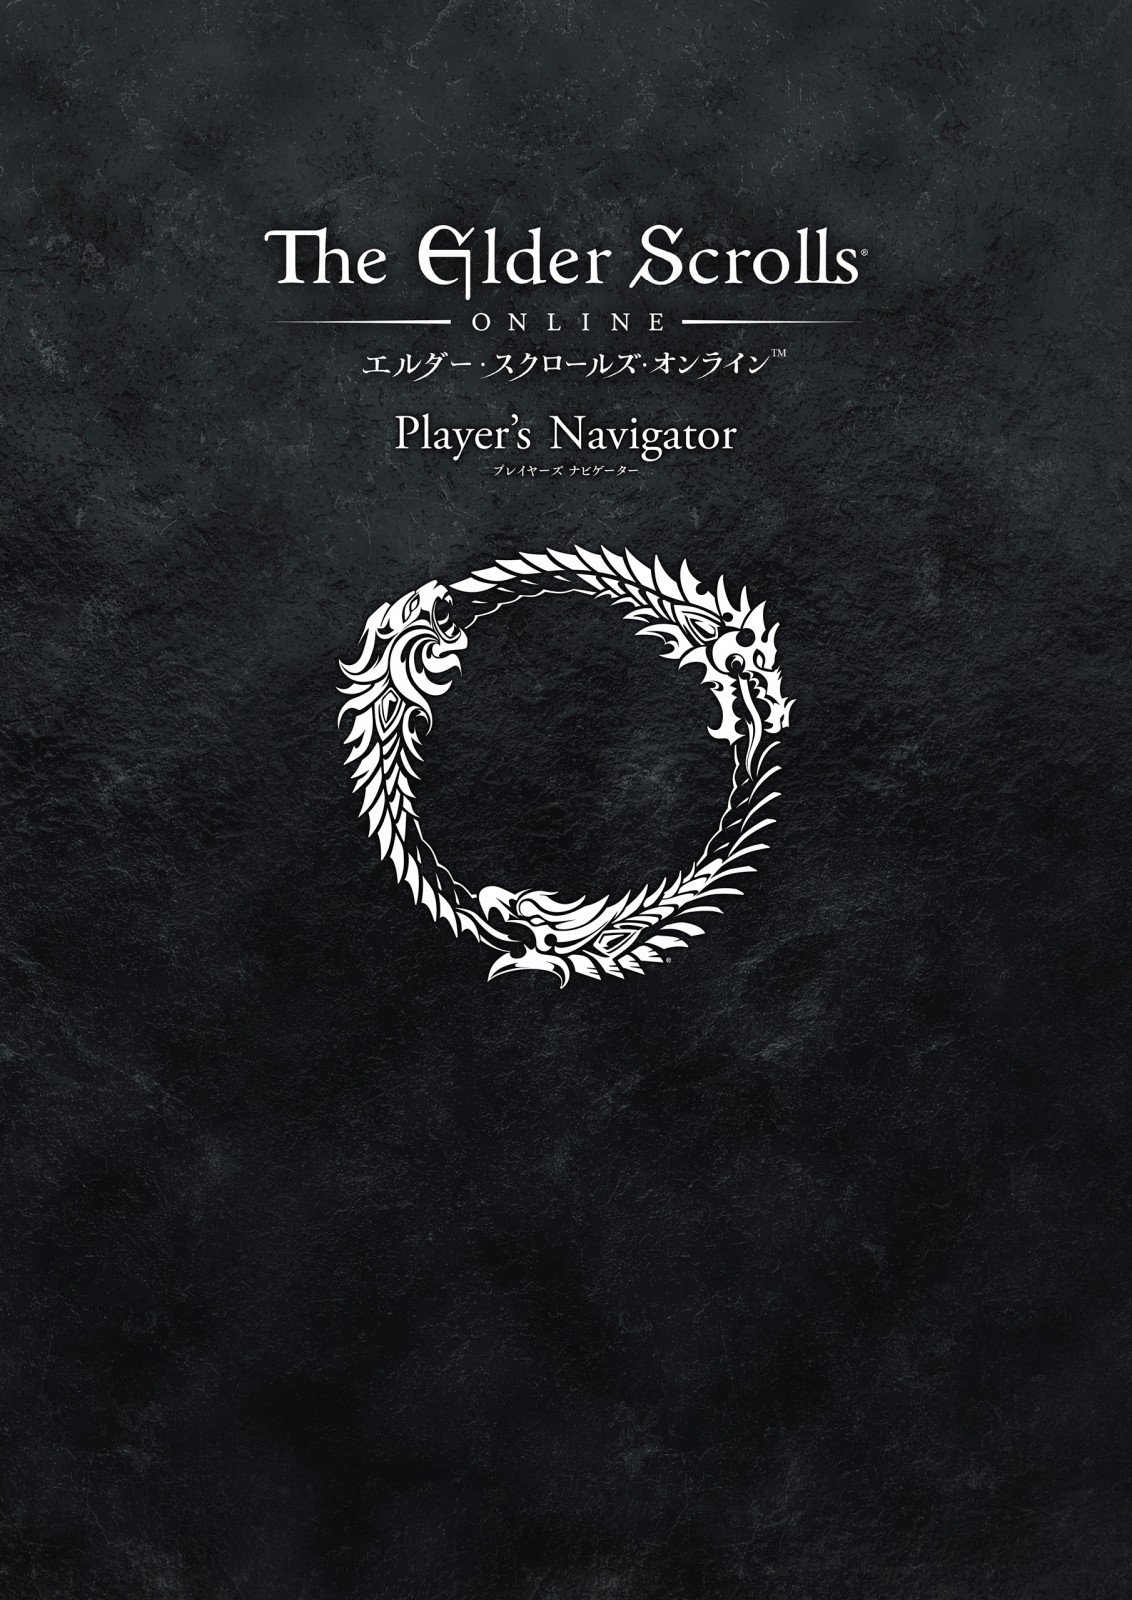 Elder Scrolls Online, The: Player's Navigator